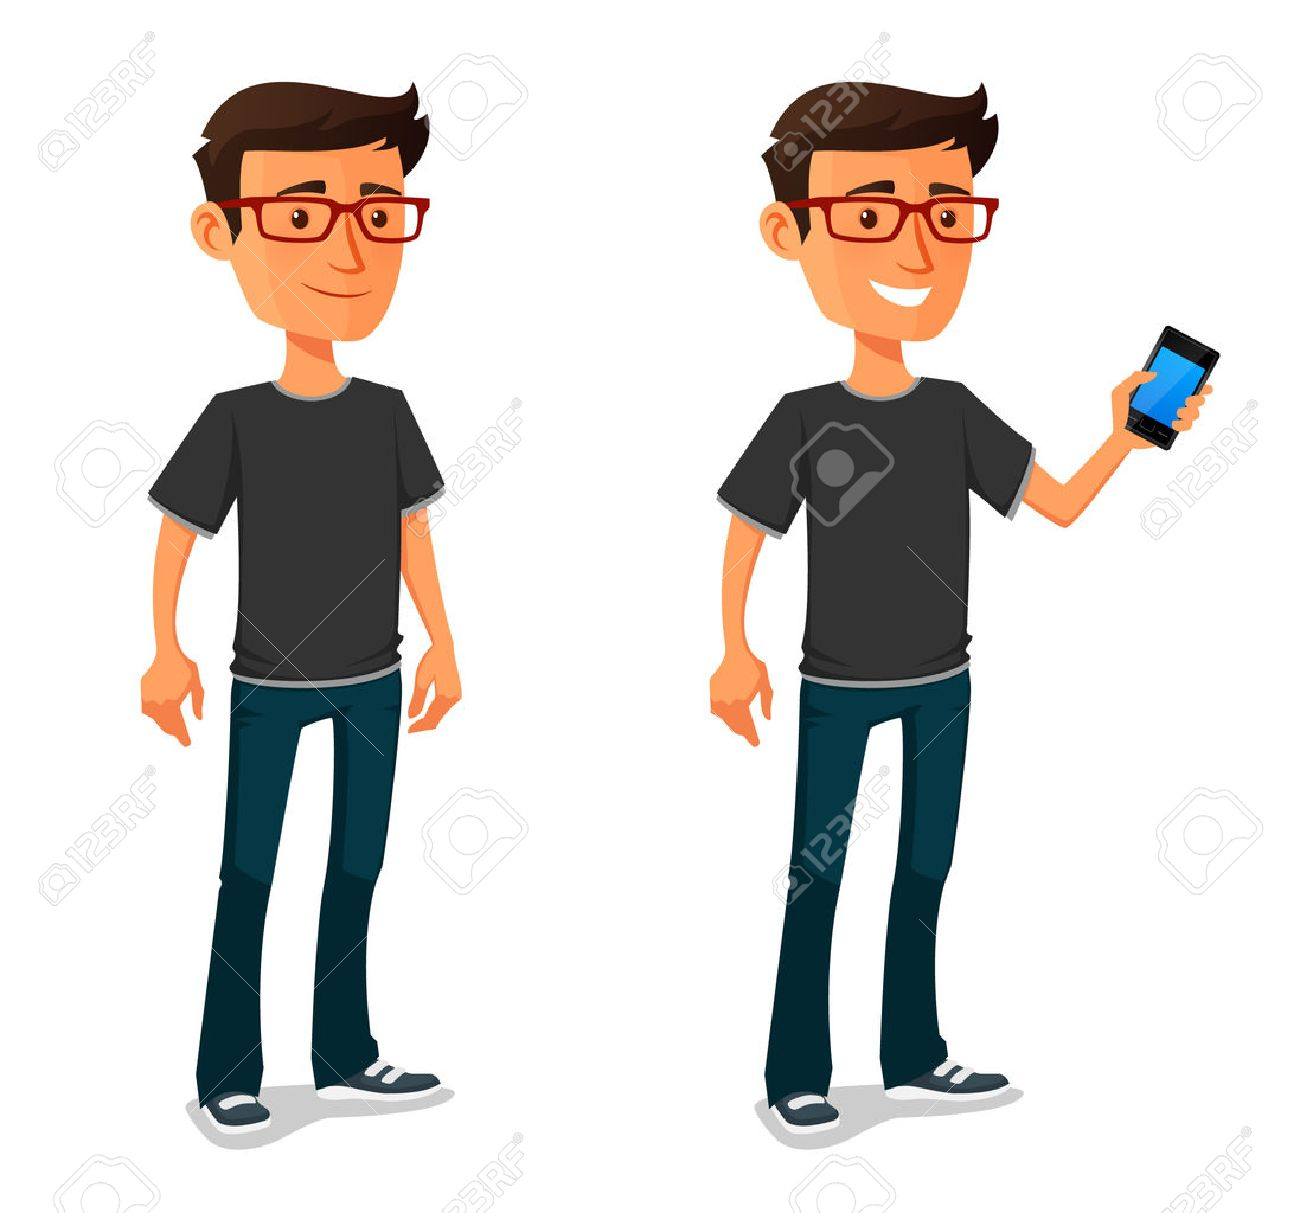 funny cartoon guy with mobile phone - 41708881